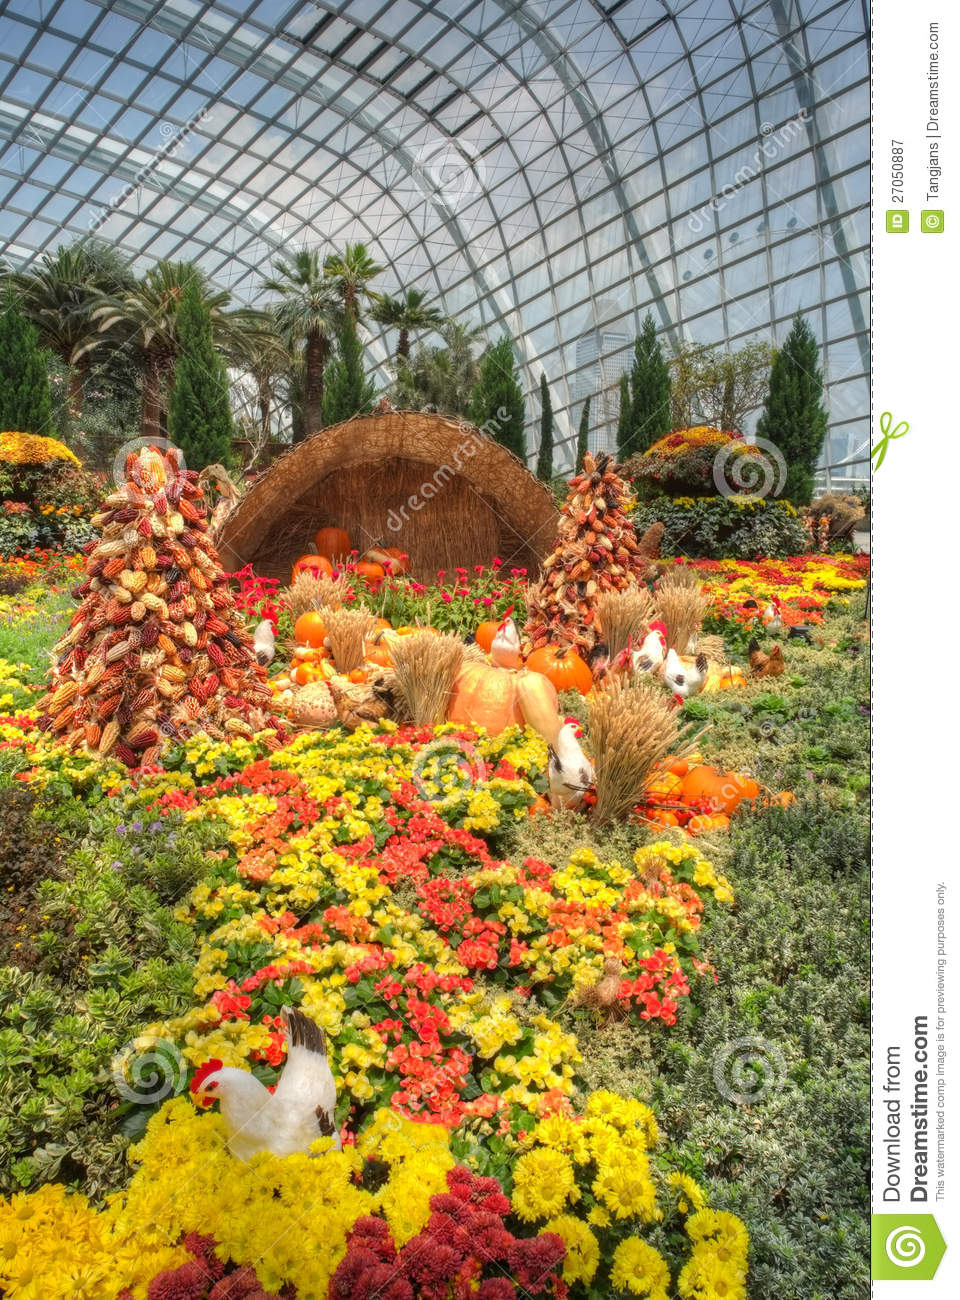 Gardens By The Bay Flower Dome Autumn Harvest Editorial